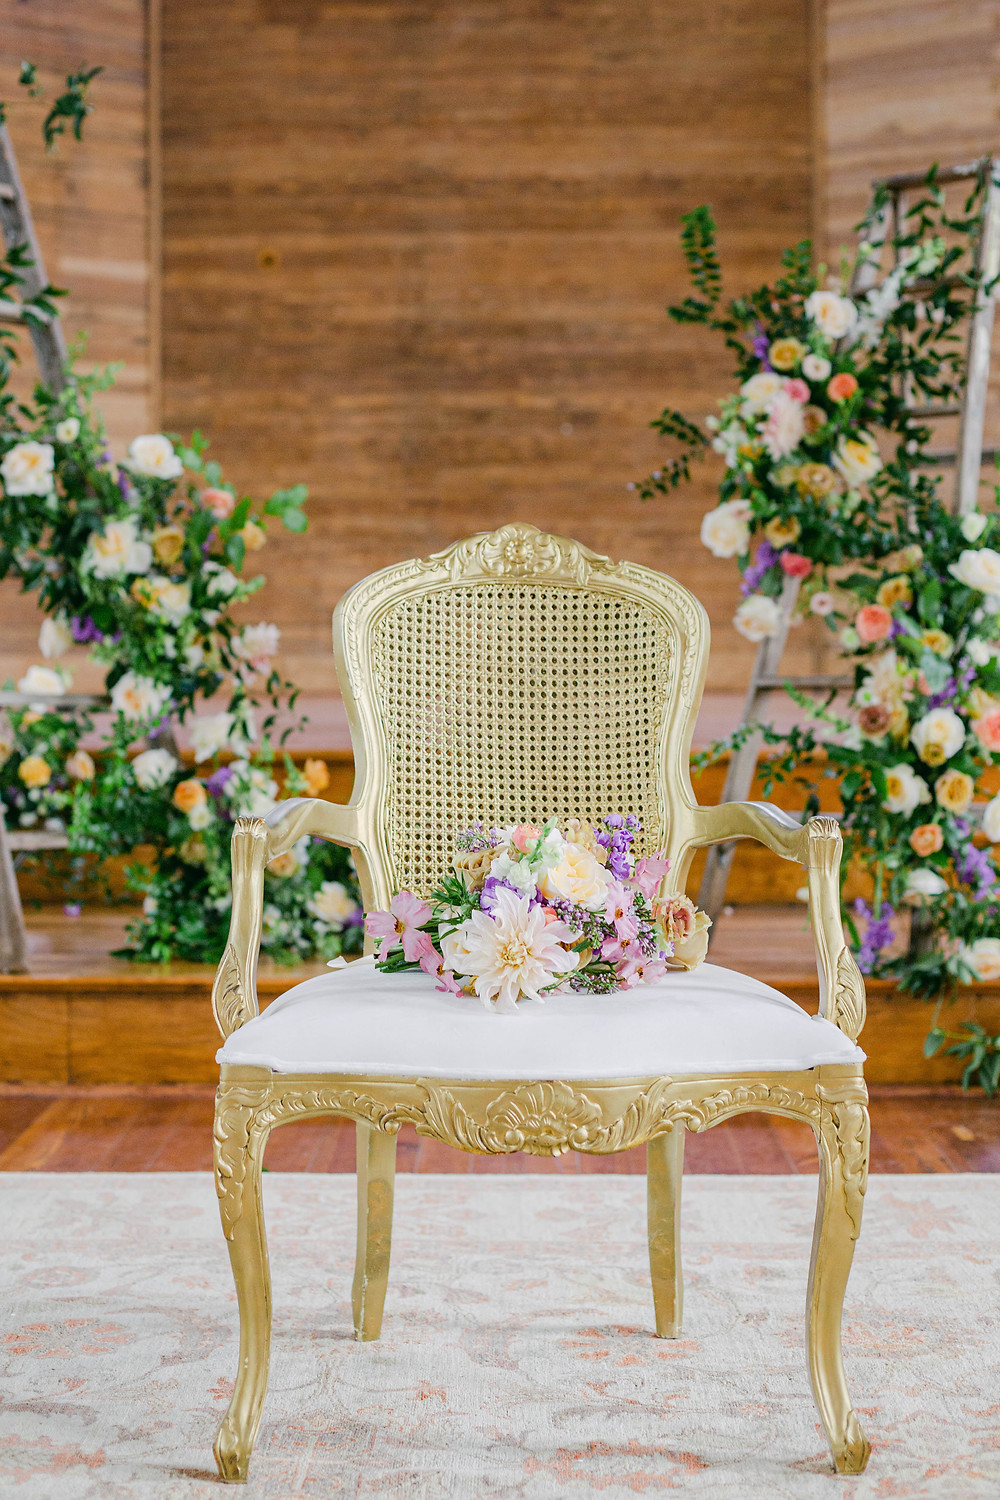 Spring Fruit Wedding in Old New Orleans Church | Complete Upholstered Ceremony Seating, Lounge Spaces, Farm Tables, and Many More Details with Lovegood Wedding & Event Rentals | Lovegood Wedding & Event Rentals, New Orleans Vintage Rental Company for Corporate, Parties, and Weddings | Lounge Furniture in NOLA, Specialty Rentals, Decor across the Southeast, Velvet Furniture Ceremony Wooden Ladders Covered in Florals